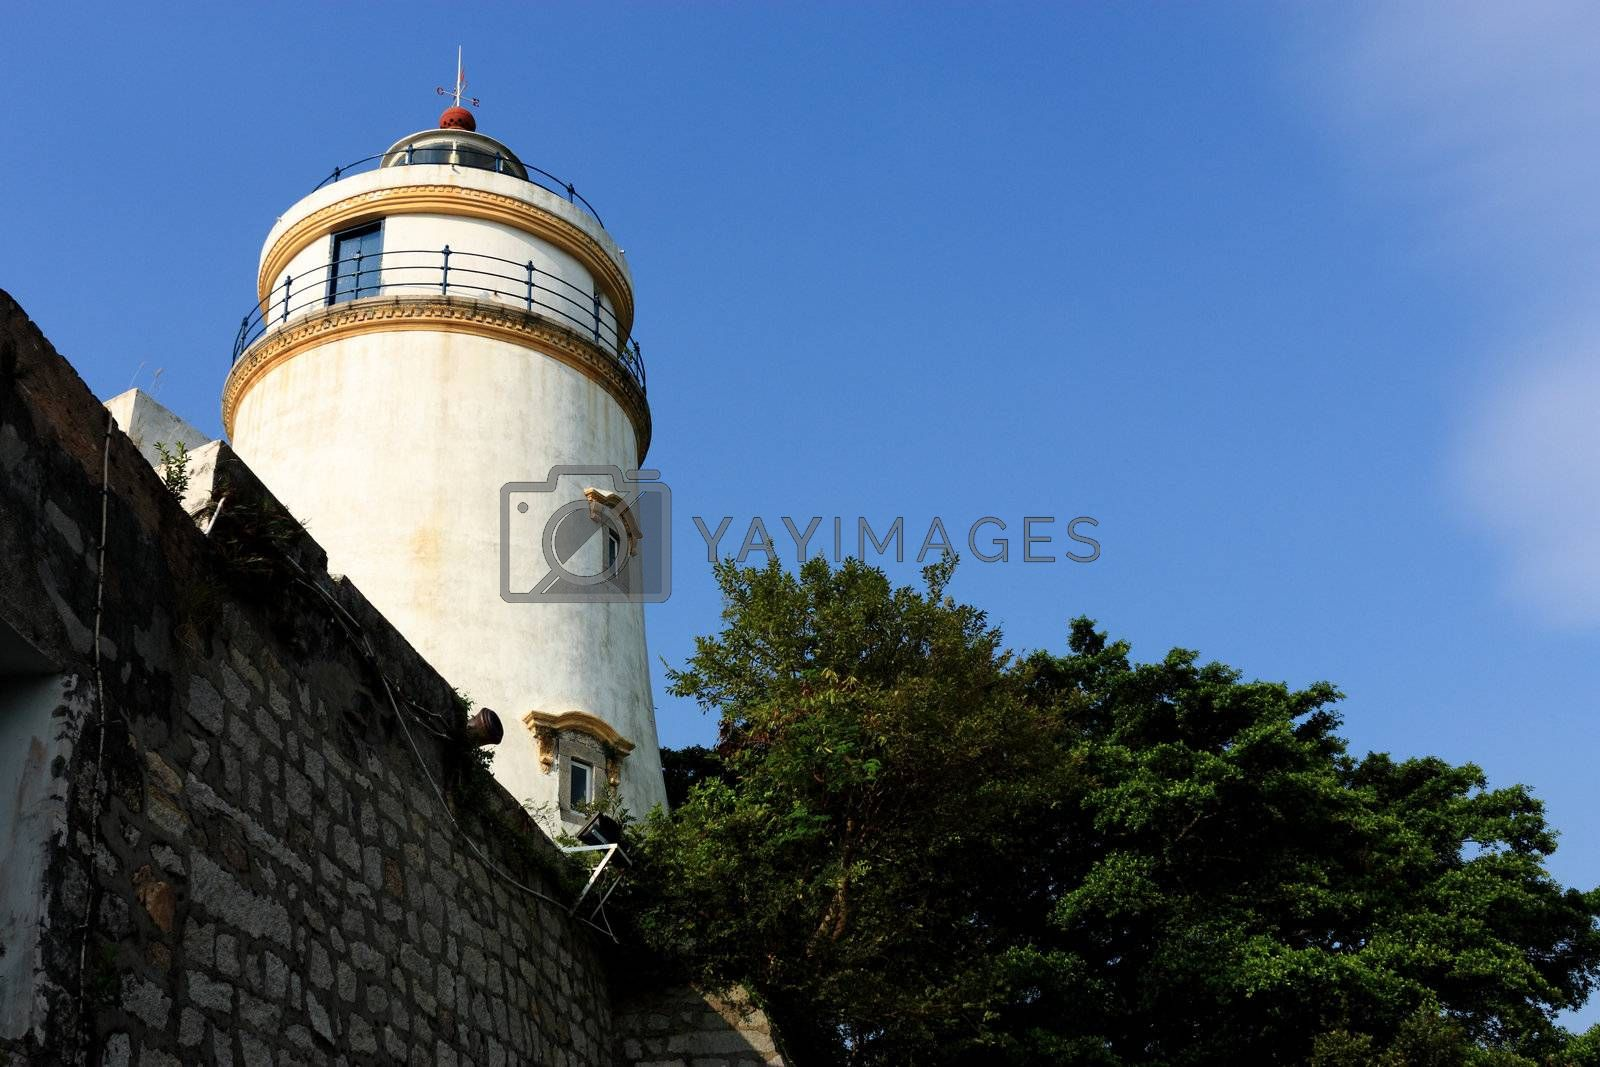 Royalty free image of old light house in macau by leungchopan